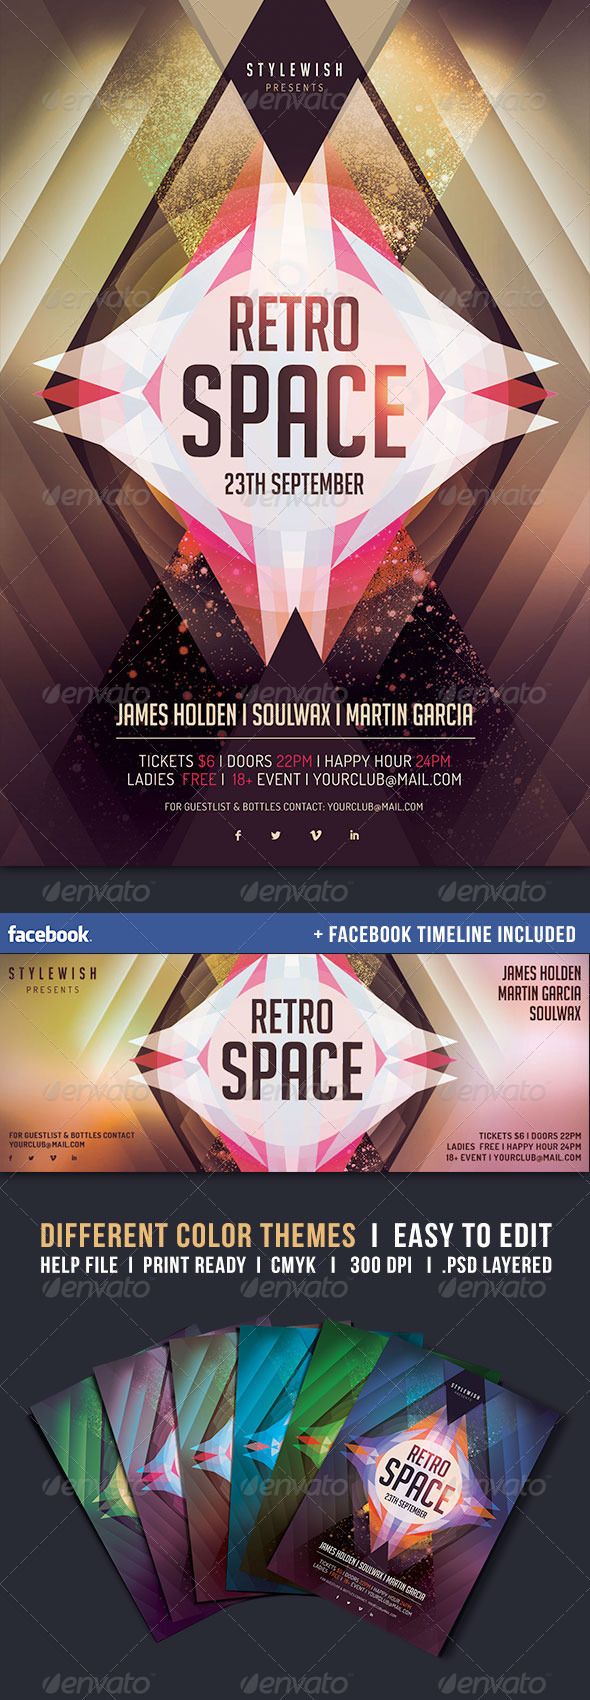 GraphicRiver Retro Space Flyer & Fb Timeline 5288912